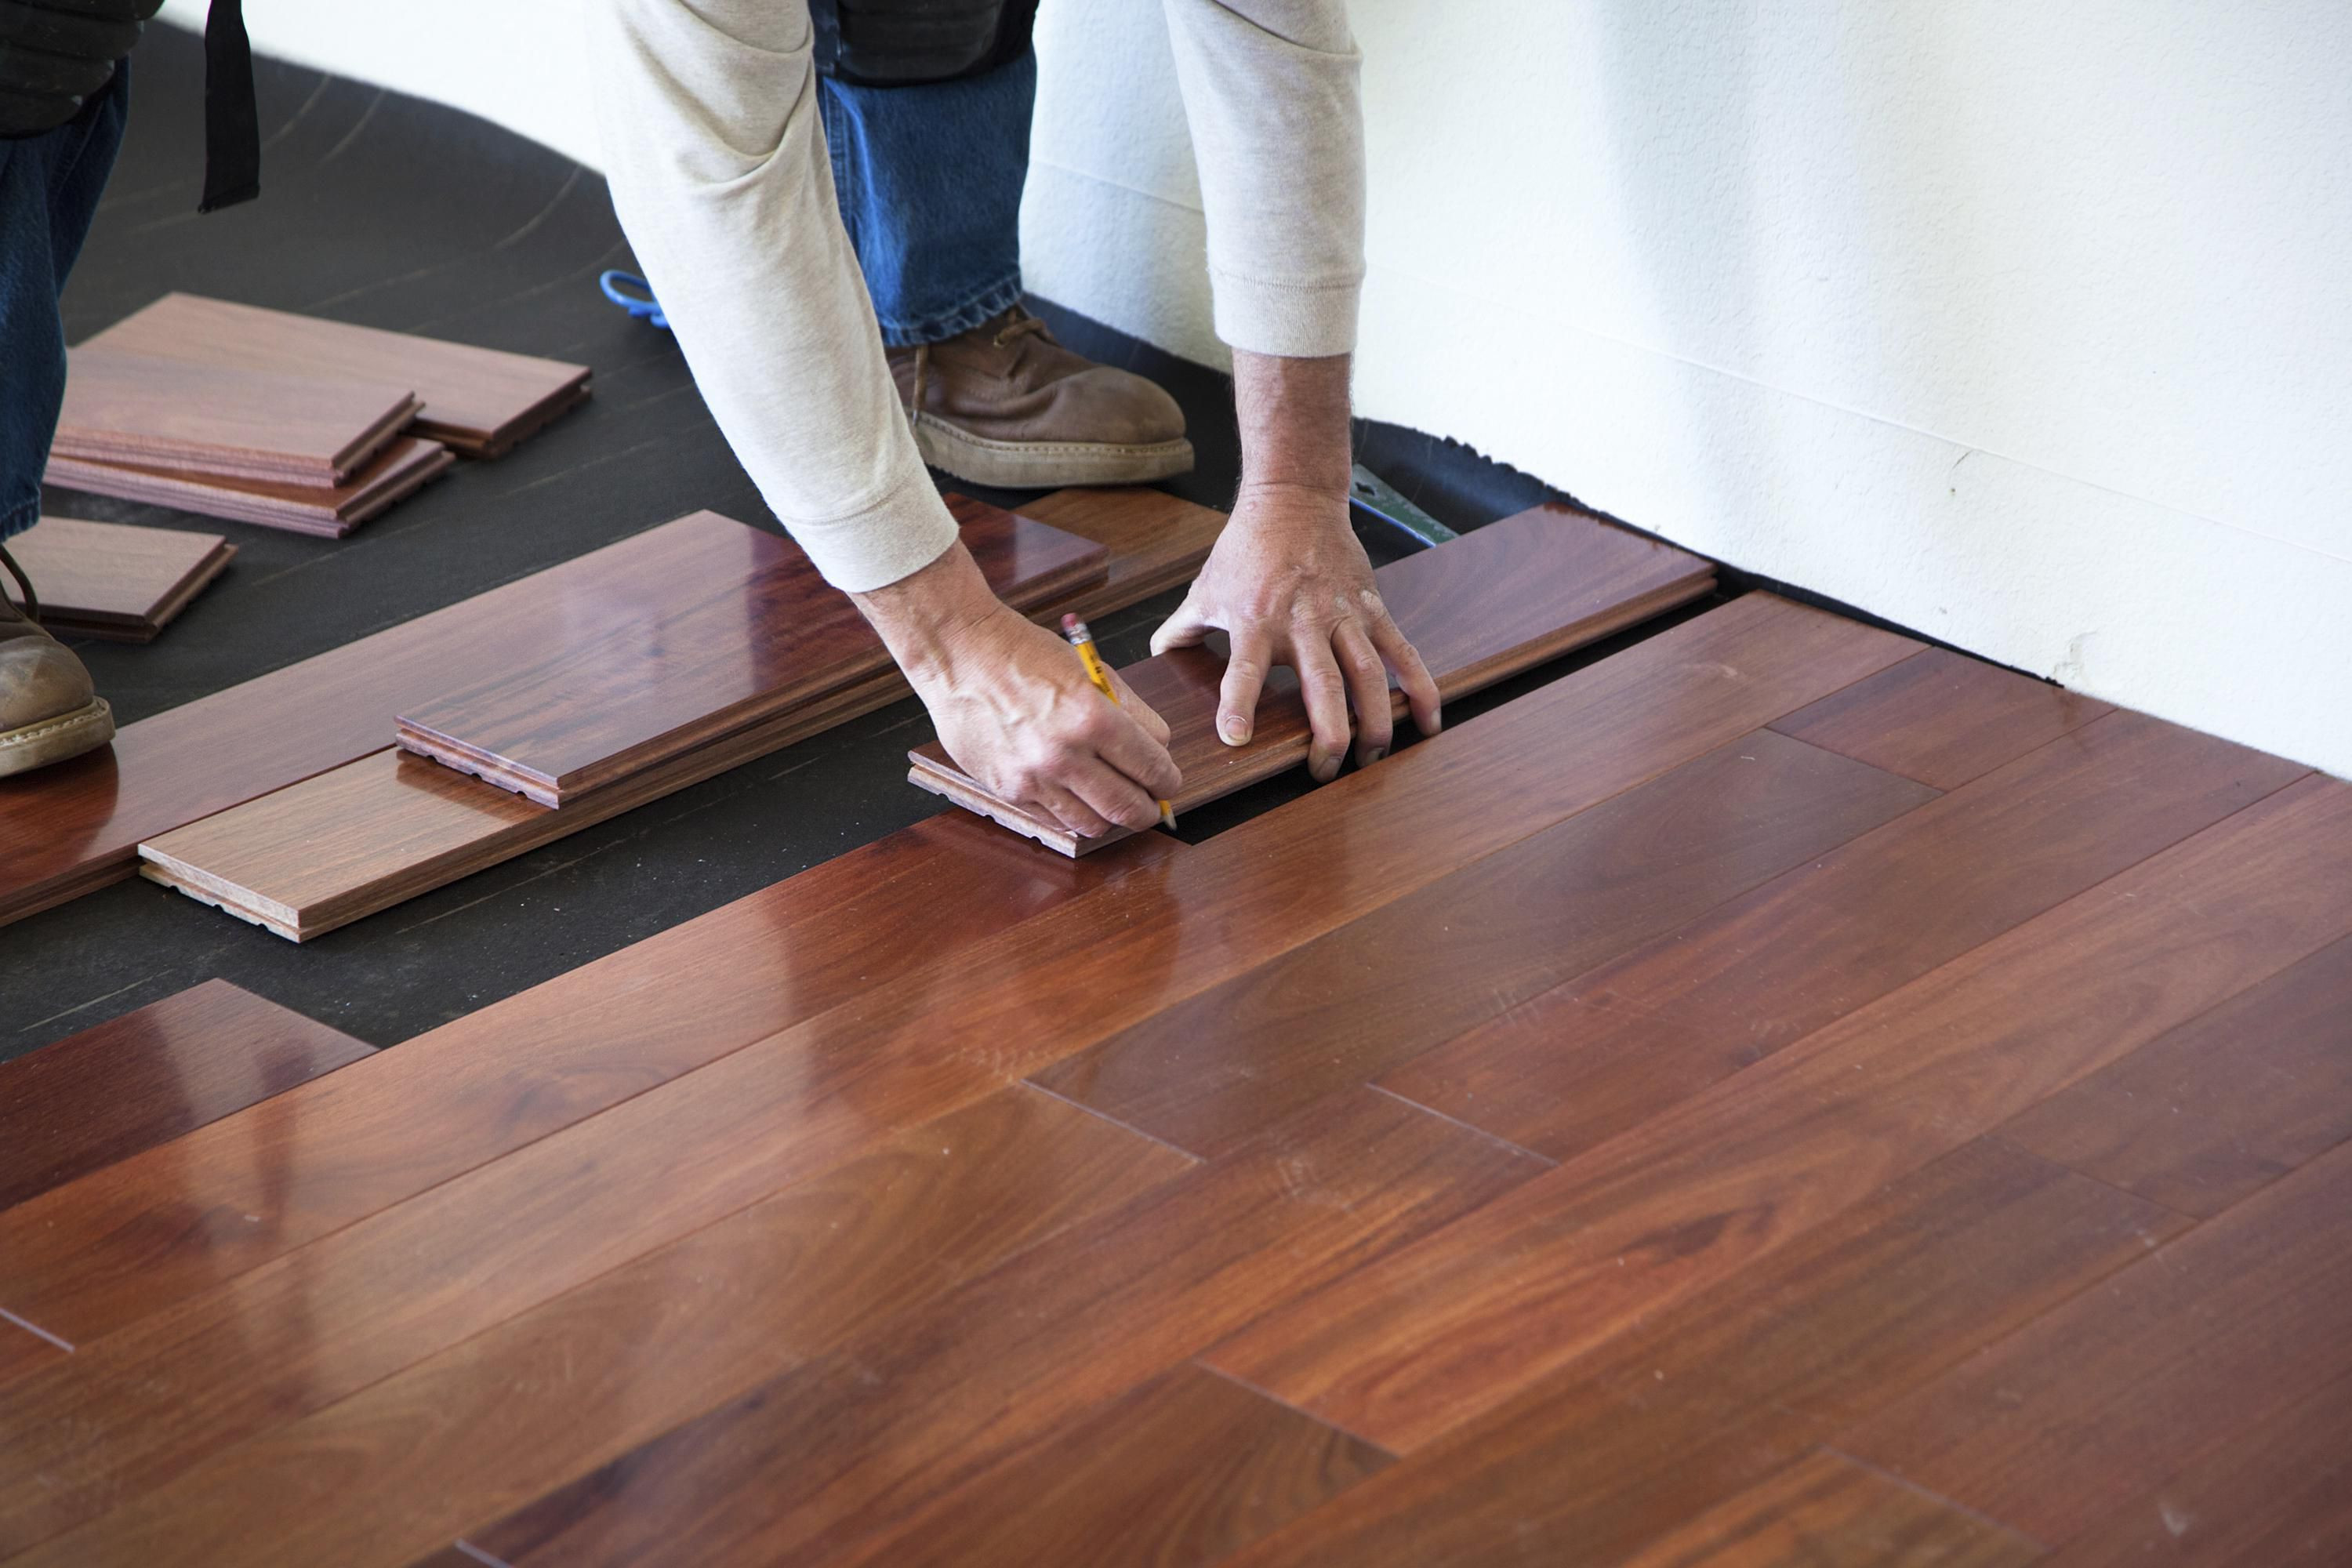 discount hardwood flooring canada of brazilian hardwood floor basics for 170040982 56a49f213df78cf772834e21